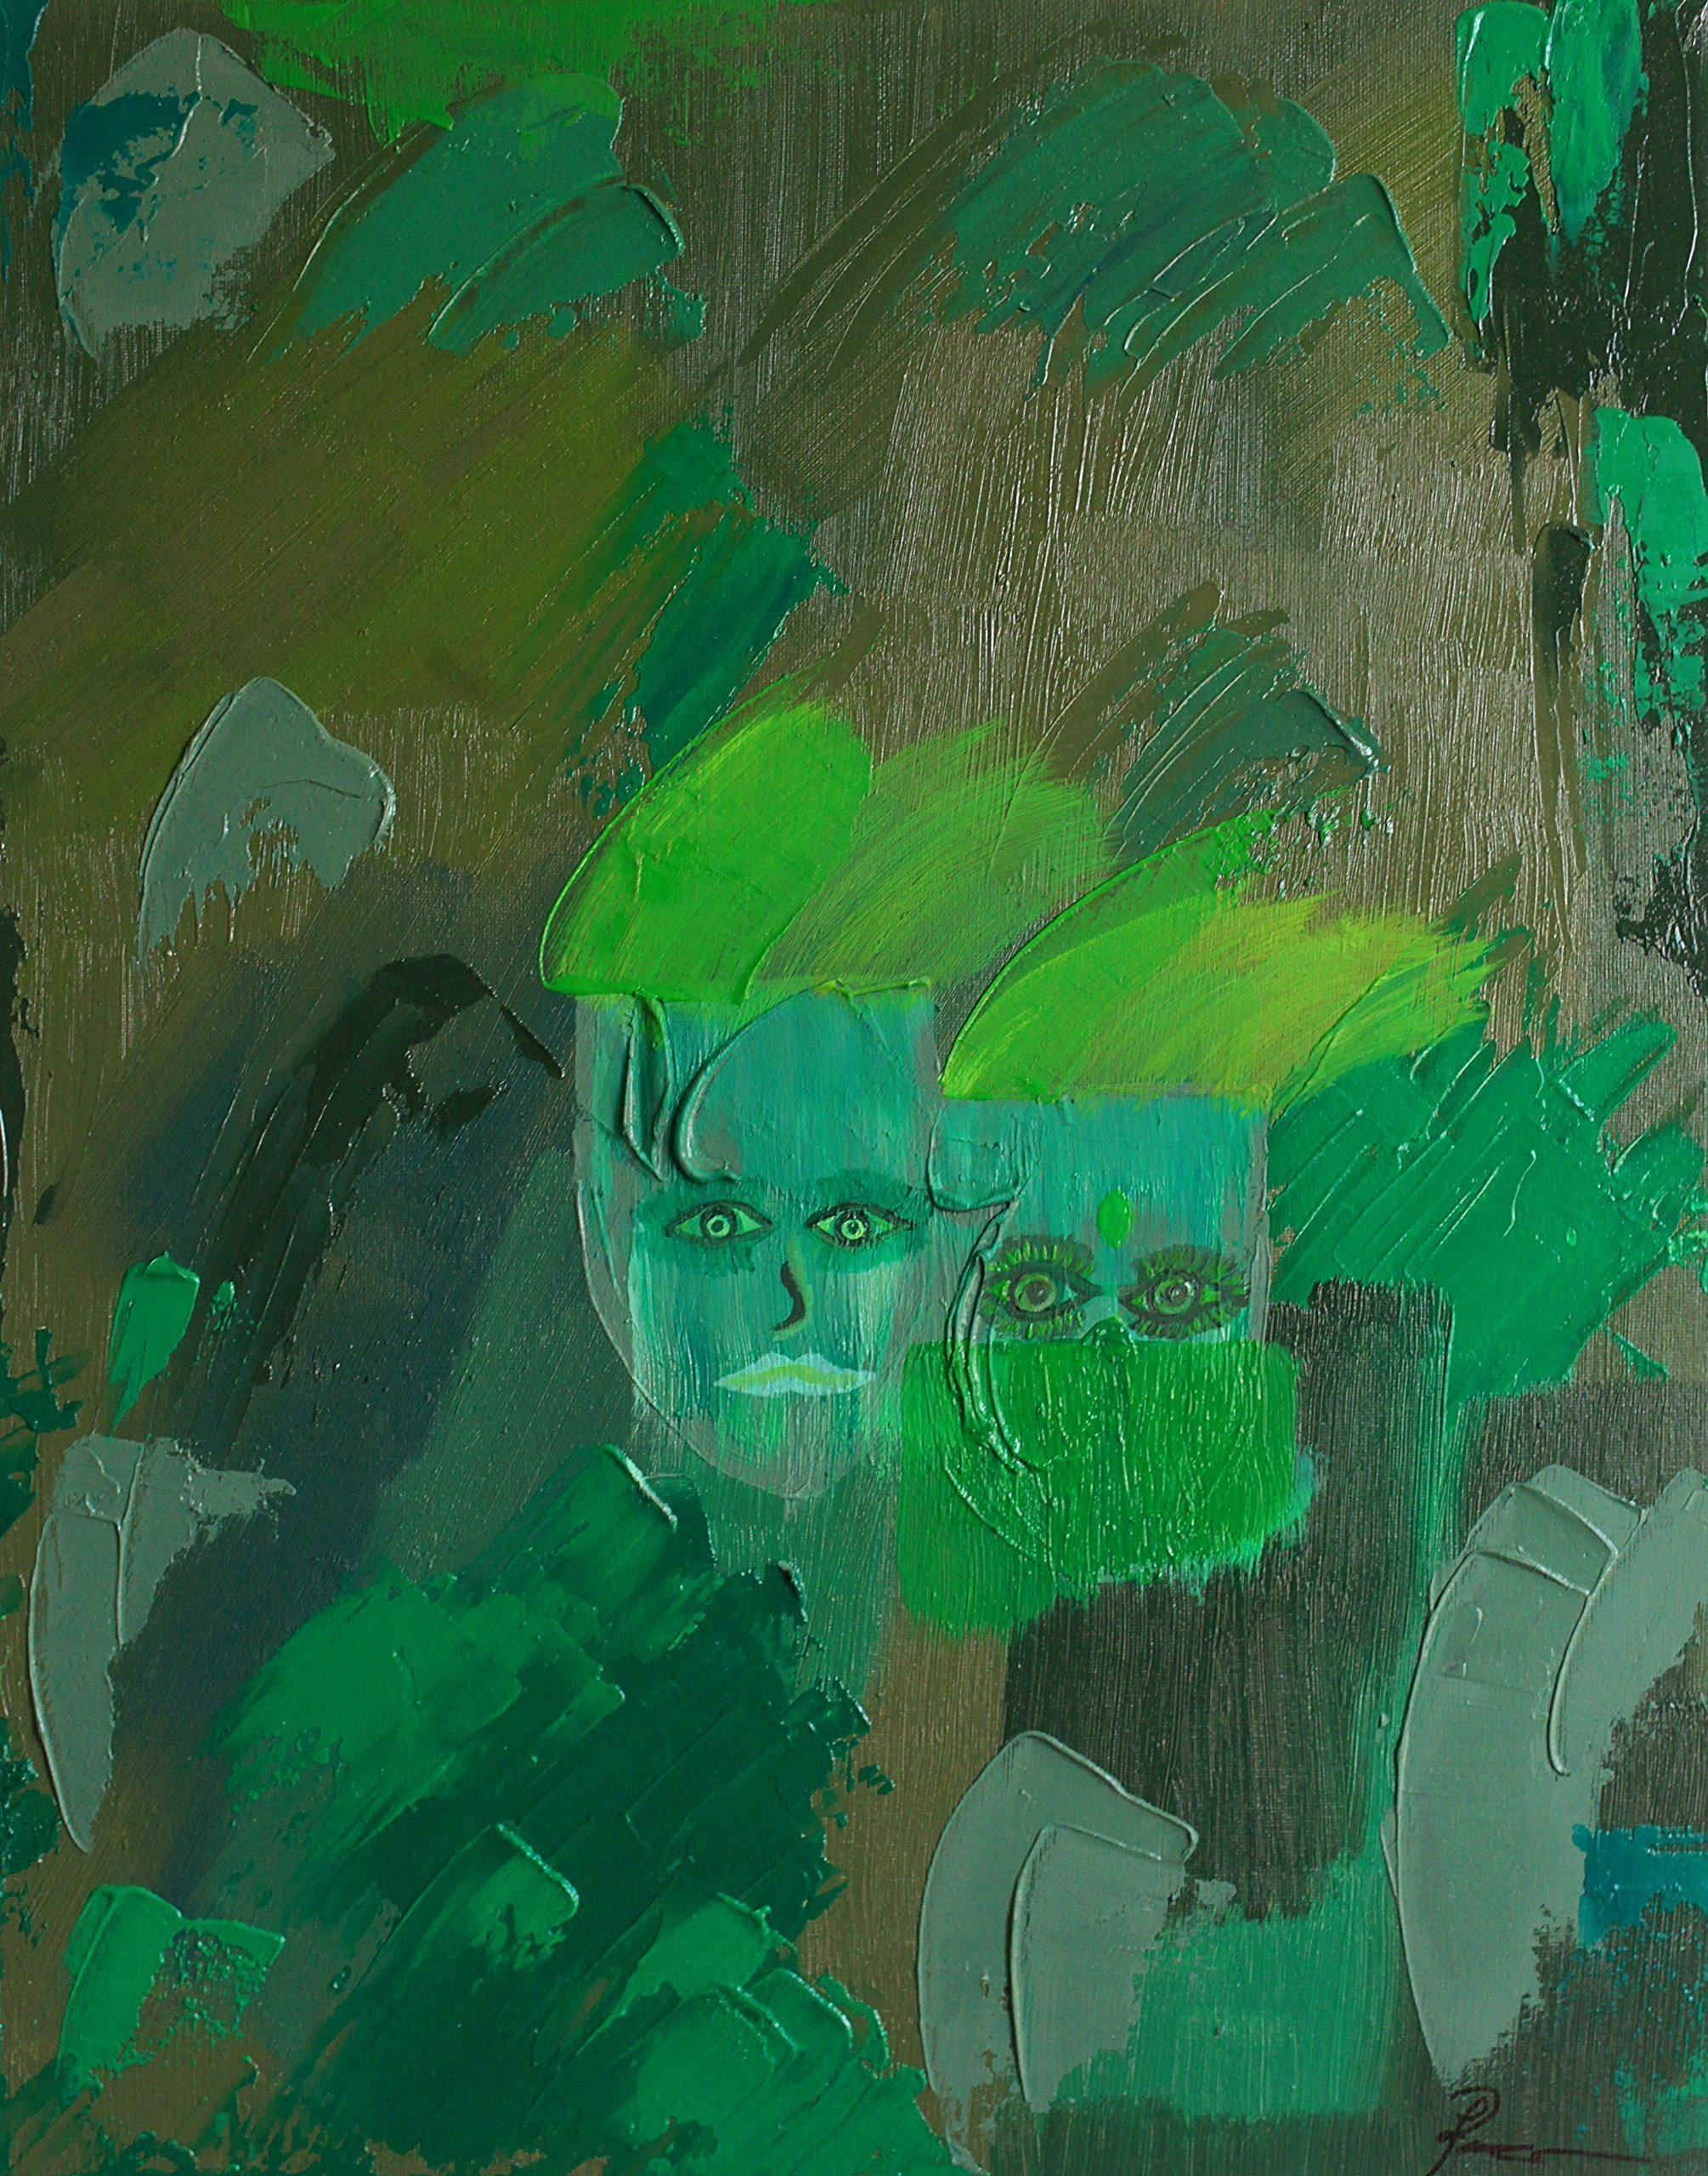 Modern Limited Edition Prints on Canvas of Paintings Indian Lovers Hindu Couples People of India Lime Bright Green Impasto Design Thick Paint Portraits Faces Expressionism Expressionist Large Wall Art